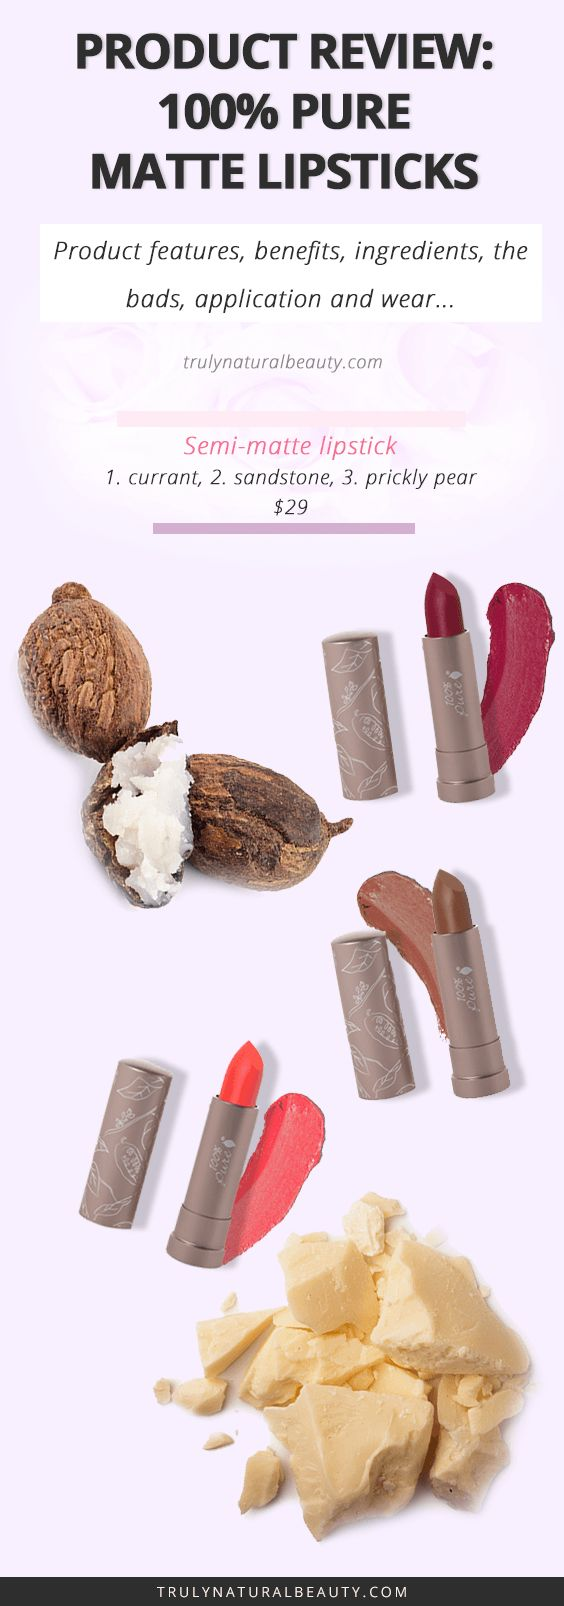 100% Pure cocoa butter semi-matte lipstick review, organic natural lipsticks, matte lipsticks, cocoa butter, shea butter, all natural ingredients, organic makeup line, natural beauty products, organic lipstick